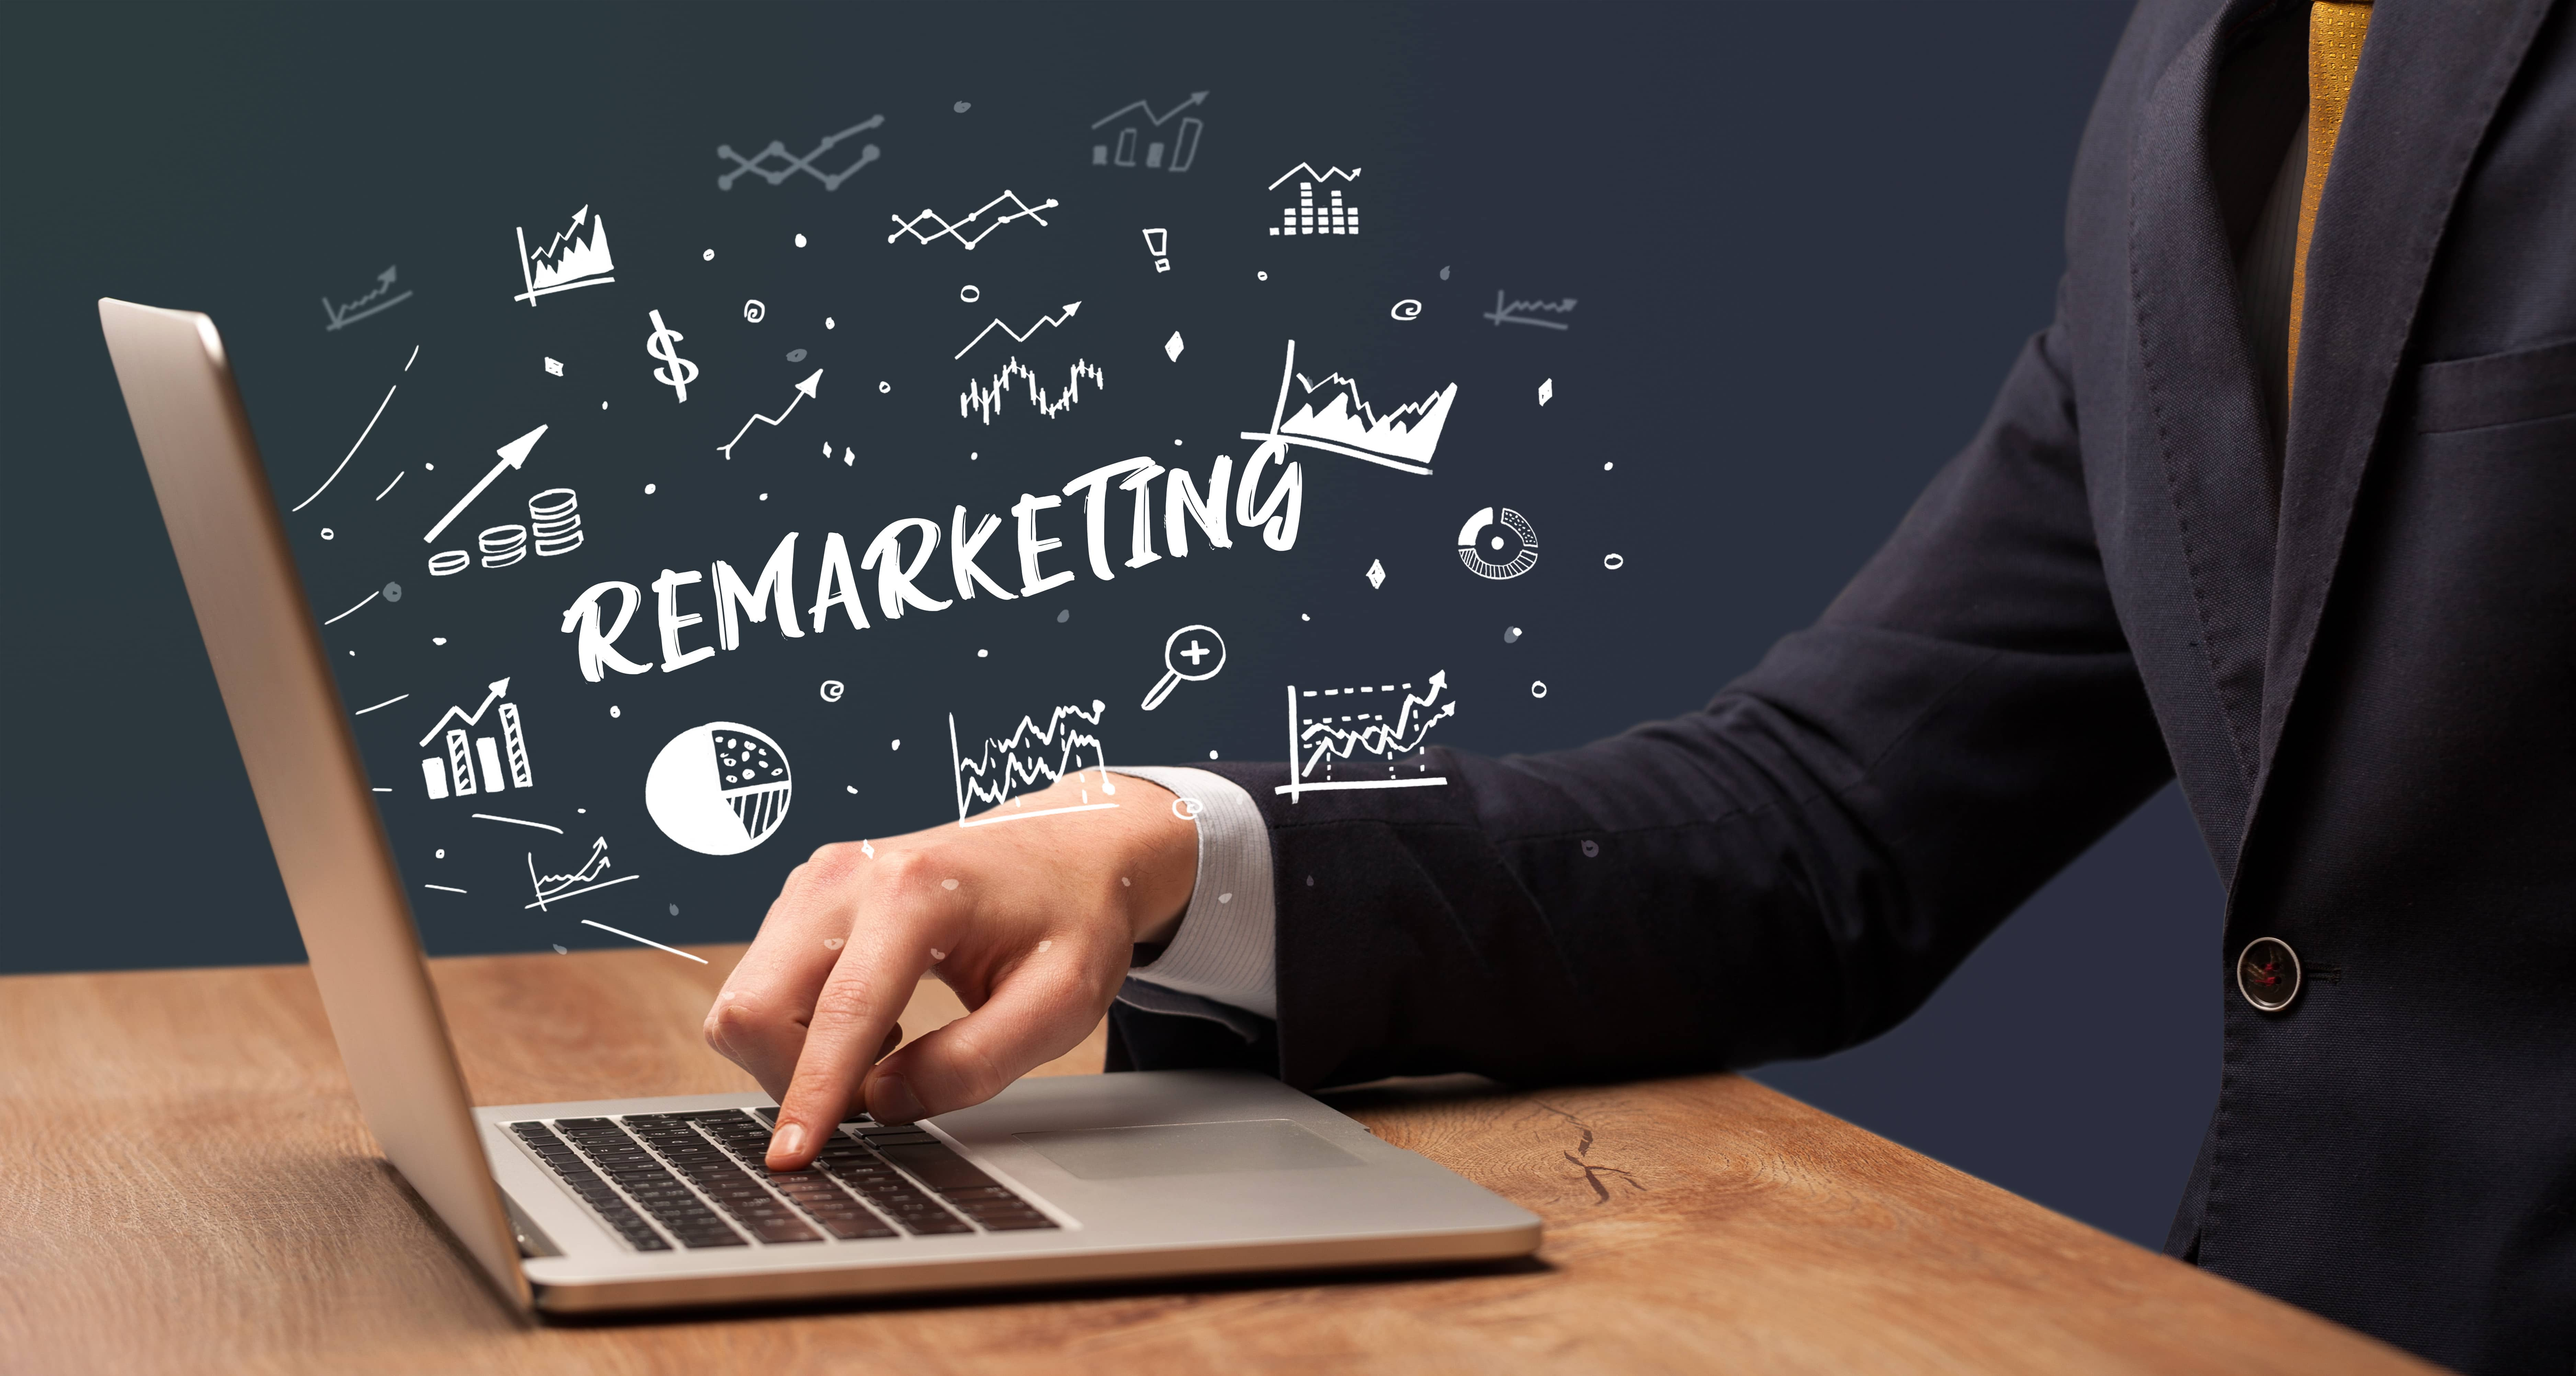 B2B Remarketing Tips and Tricks to Generate Leads